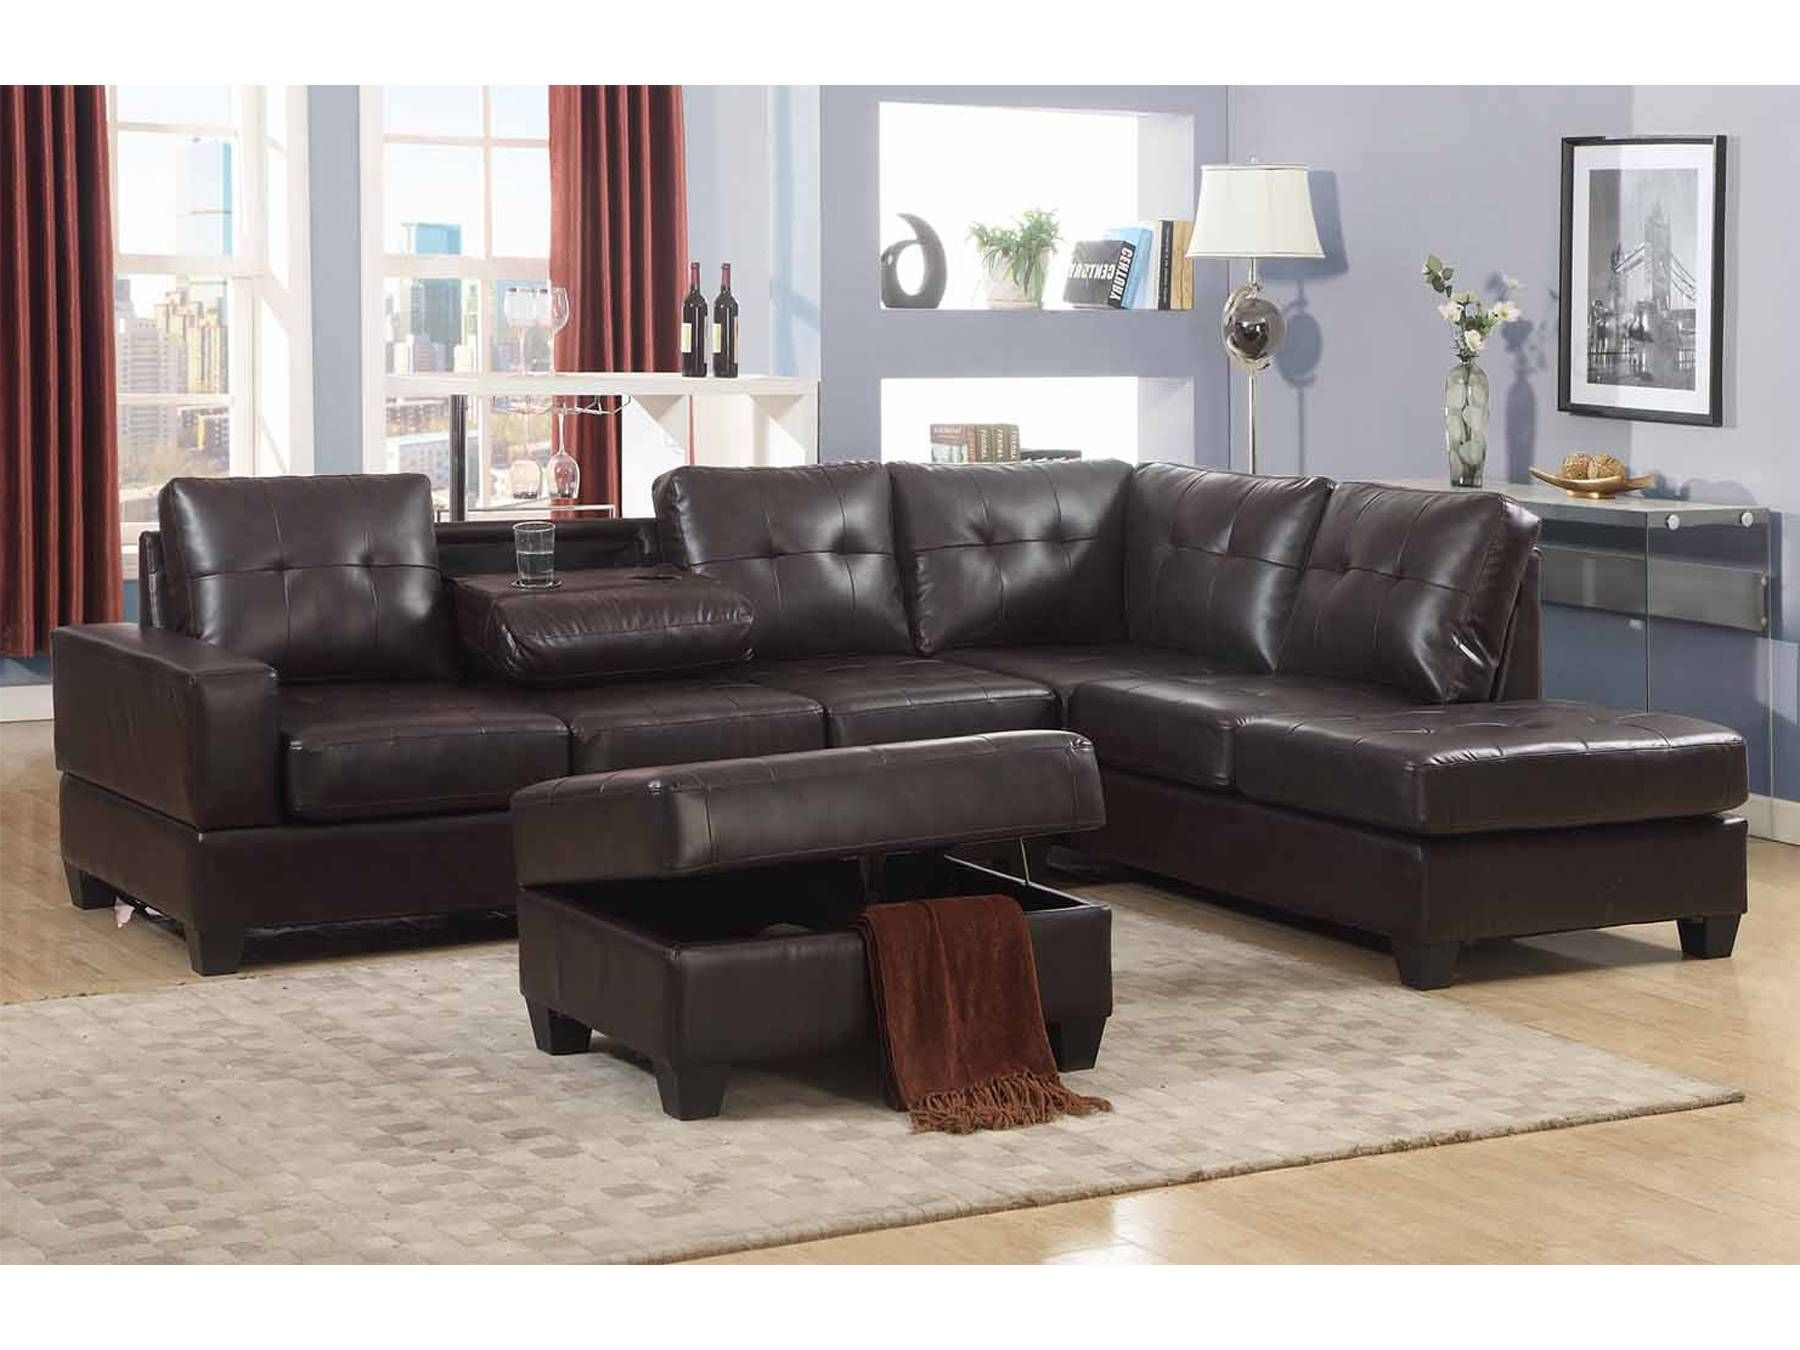 100+ Small Spaces Configurable Sectional Sofa   Best Interior Wall Paint  Check More At Http